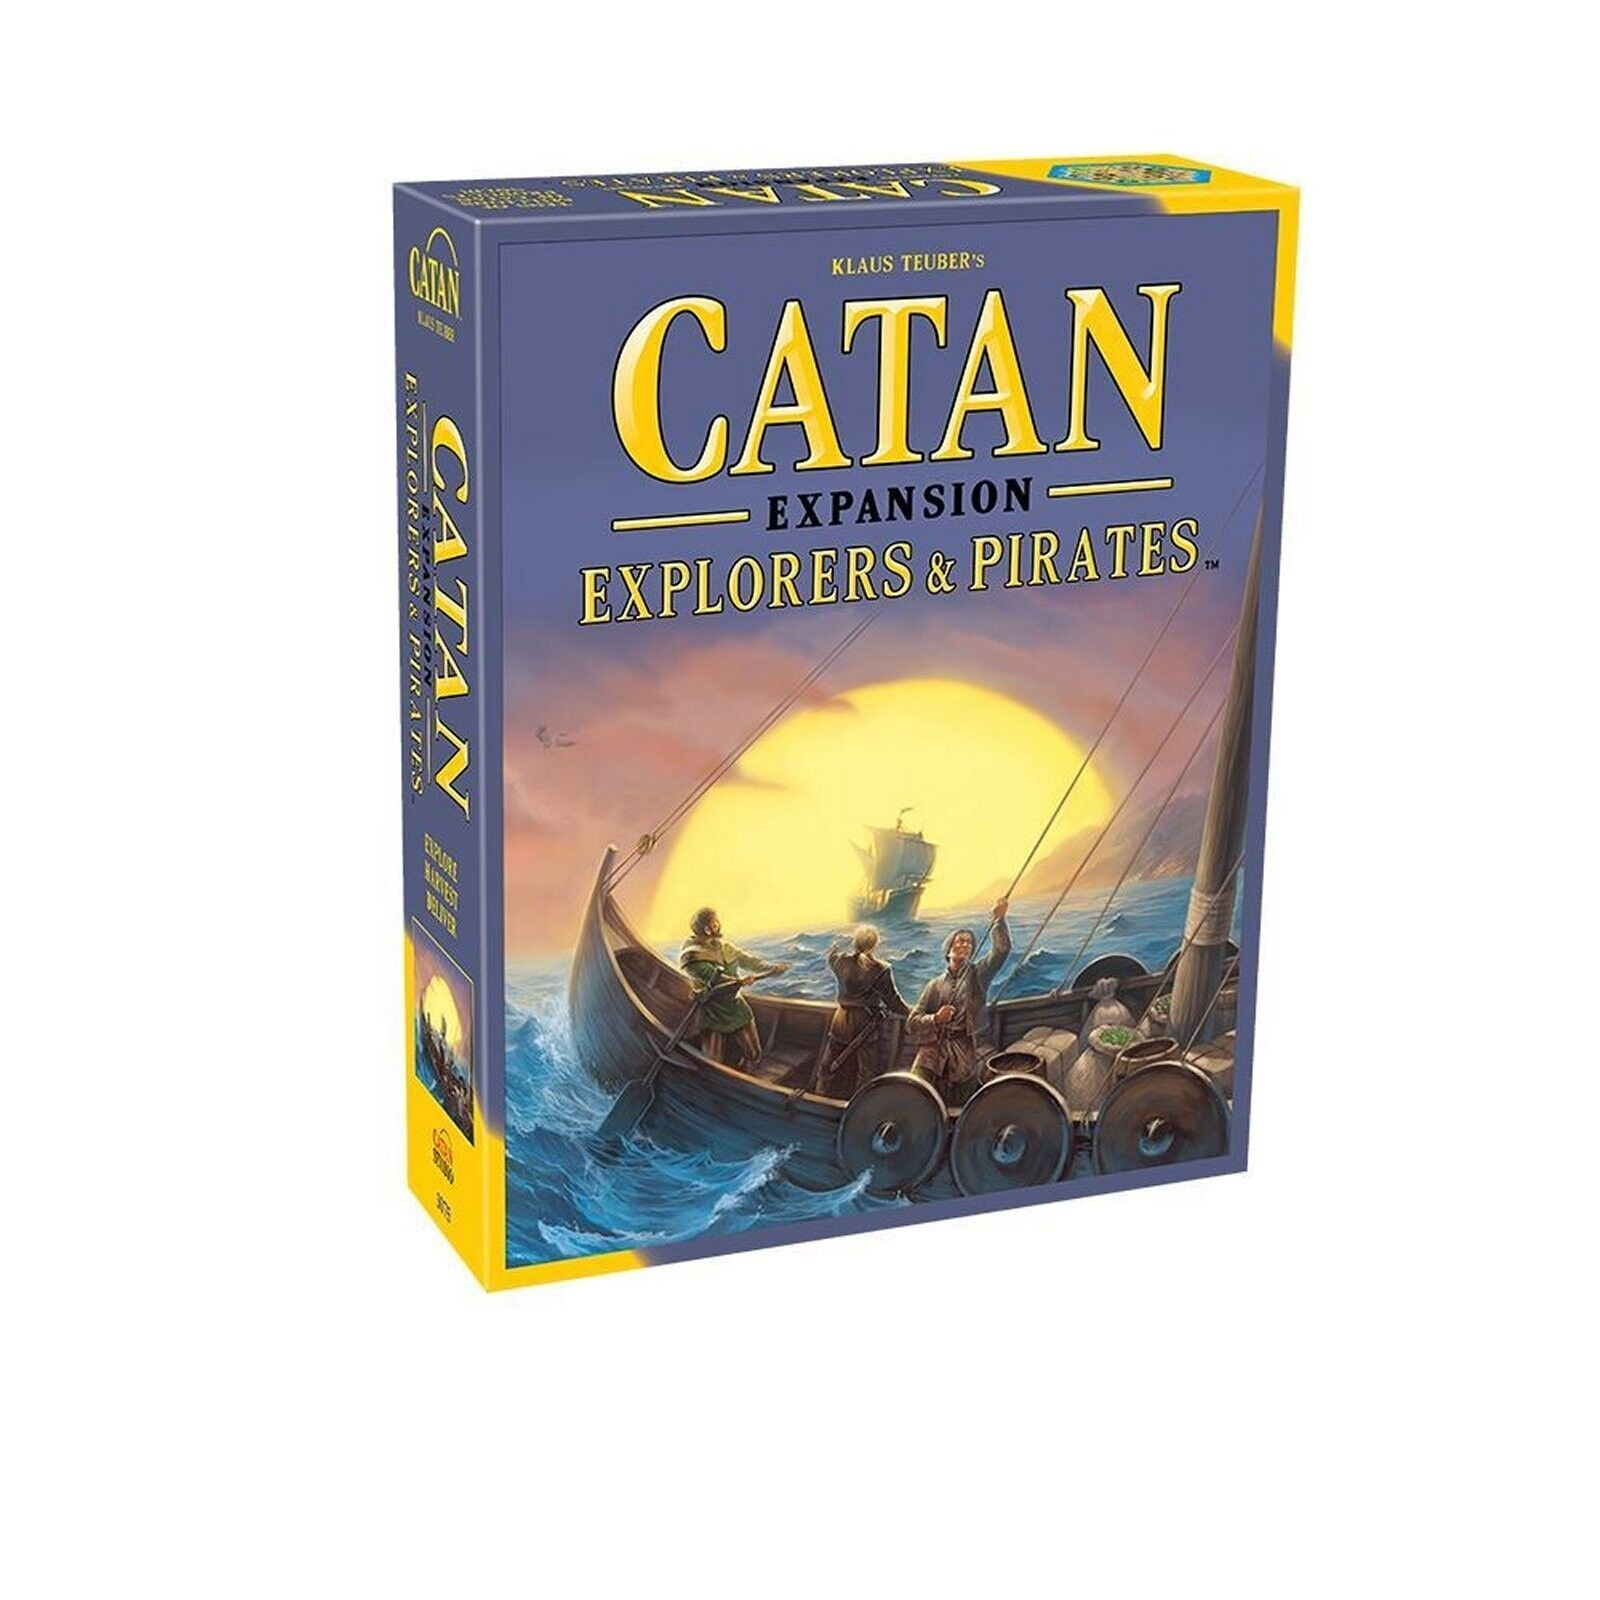 Catan - studio  forscher & piraten expansion 5th edition (neu)